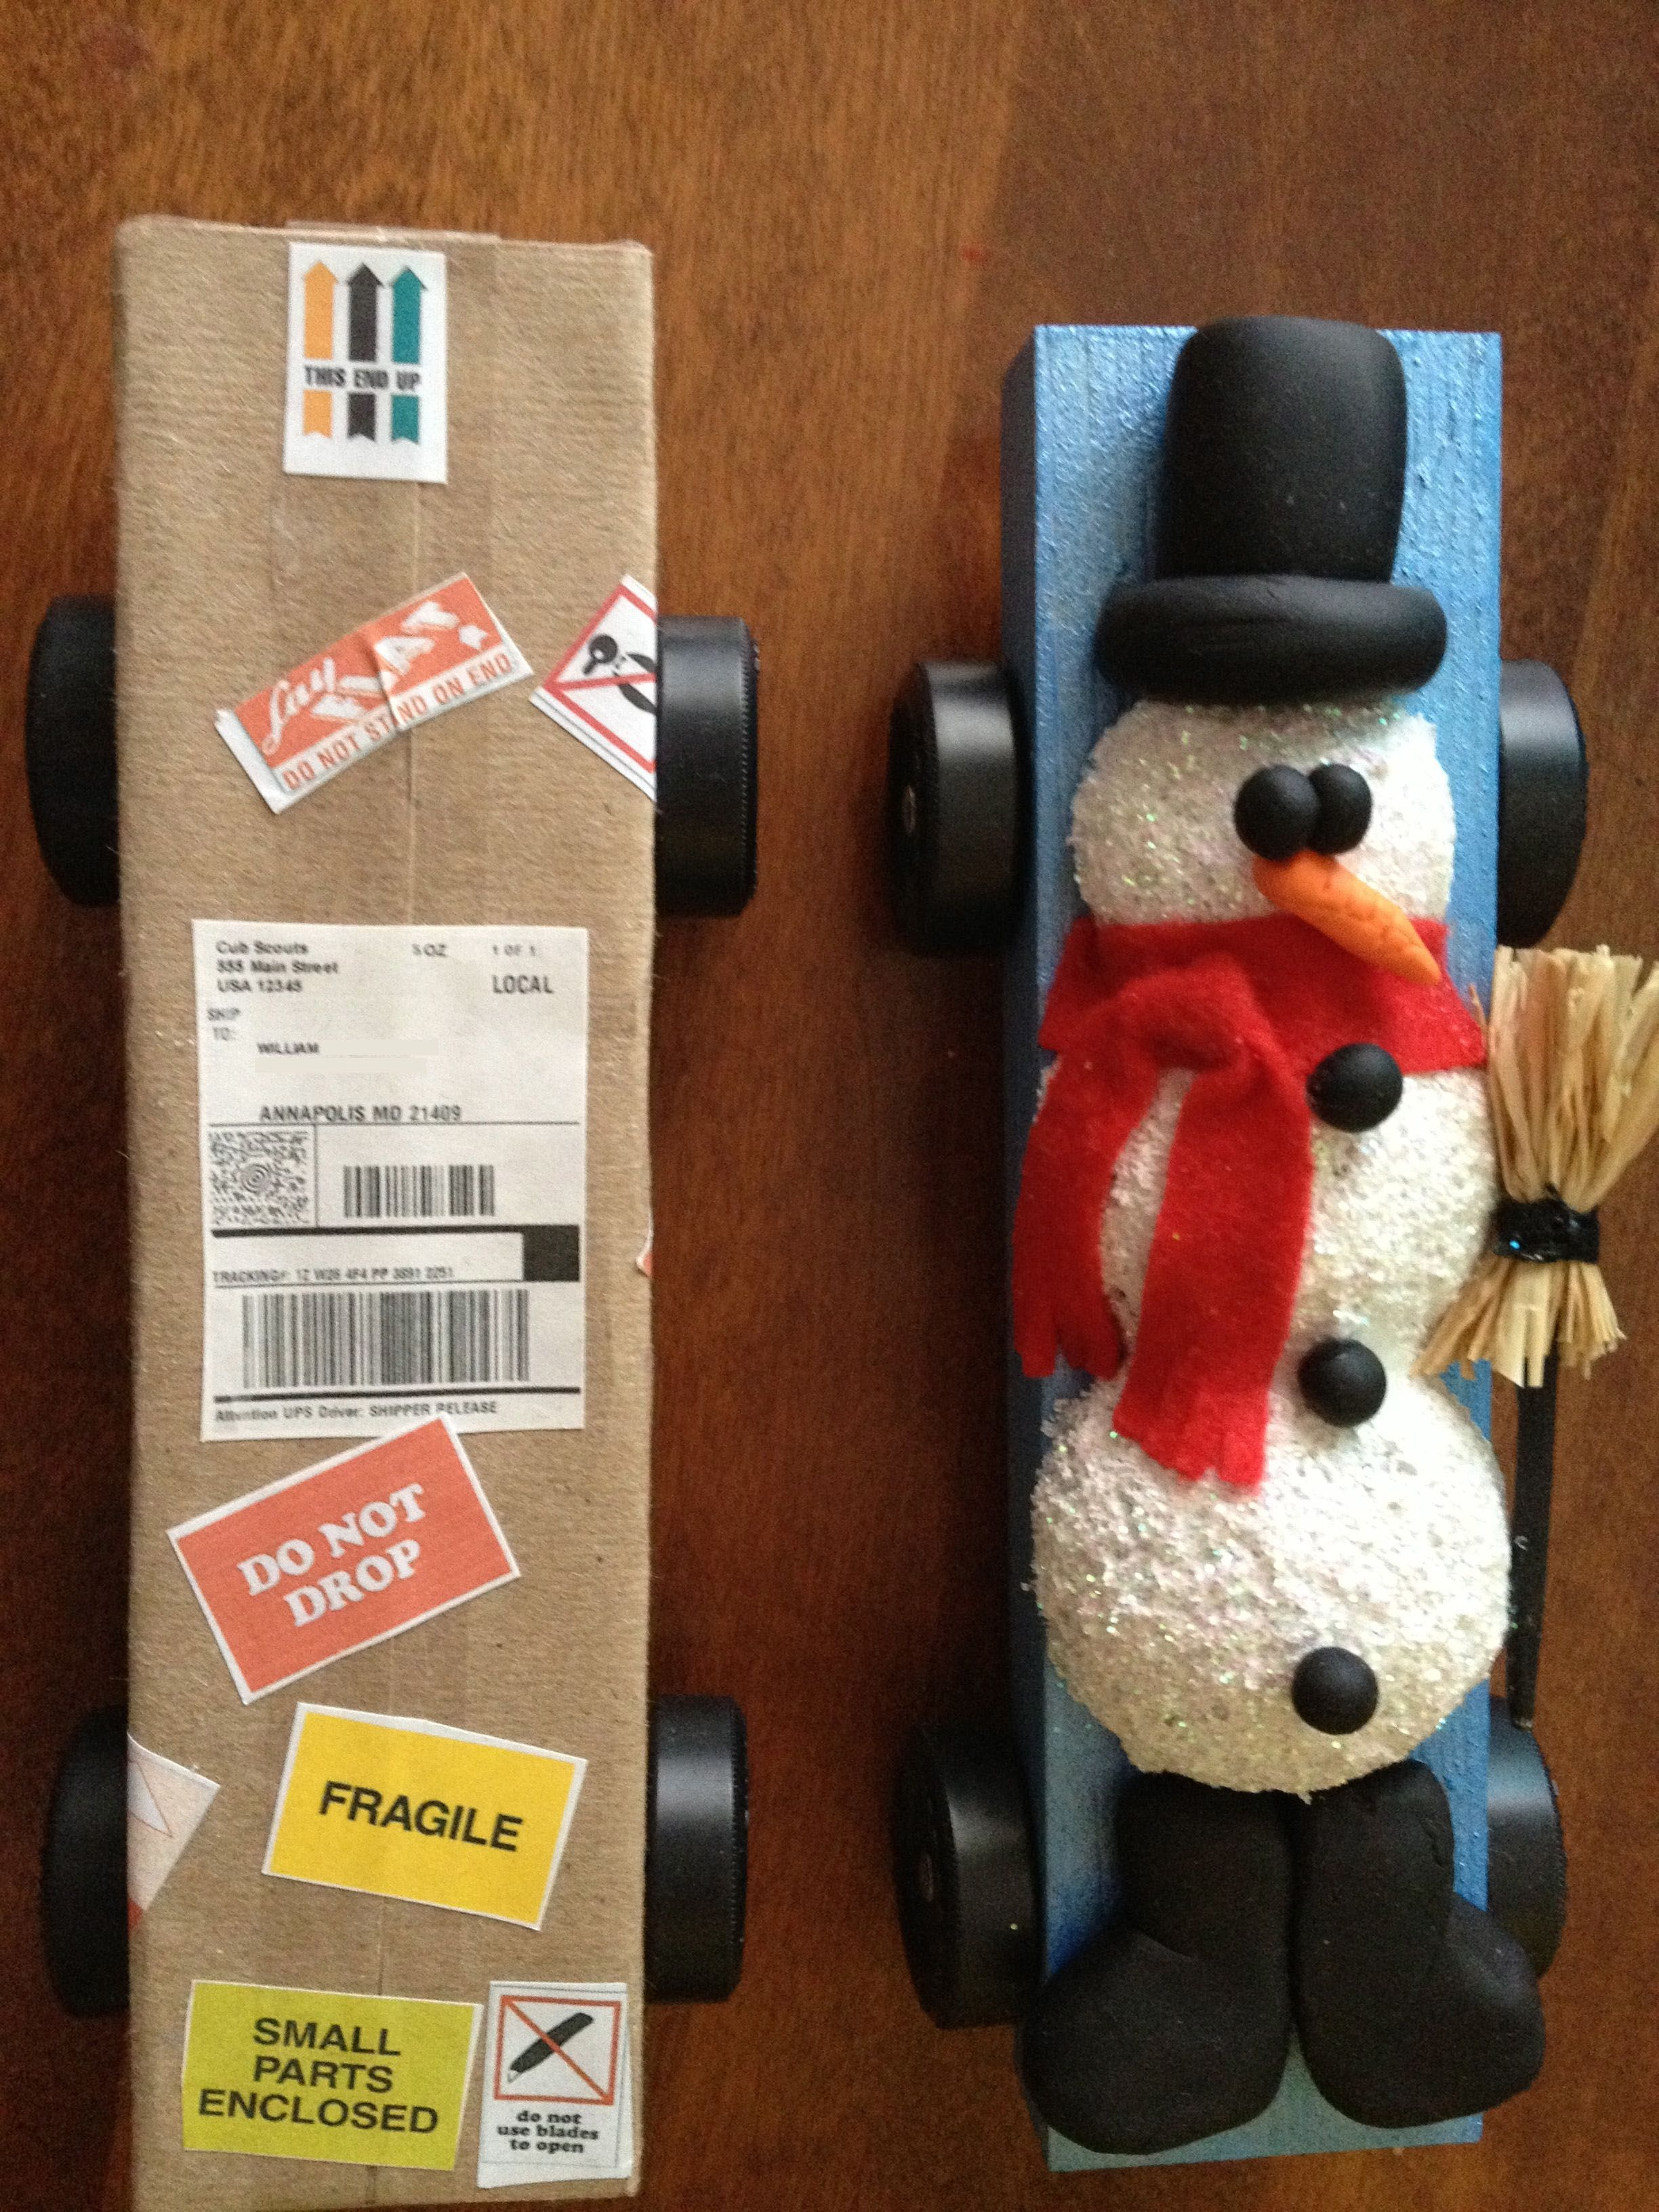 Packing box.  Shrunk preexisting labels in photoshop including UPS label which I edited with our address (which I blacked out for this post!)  Snowman is halved styrofoam balls, texture paint, glitter and Sculpey for features hat and boots.  Scrap felt scarf.  Raffia broom tied onto portion of painted skewer with floss.